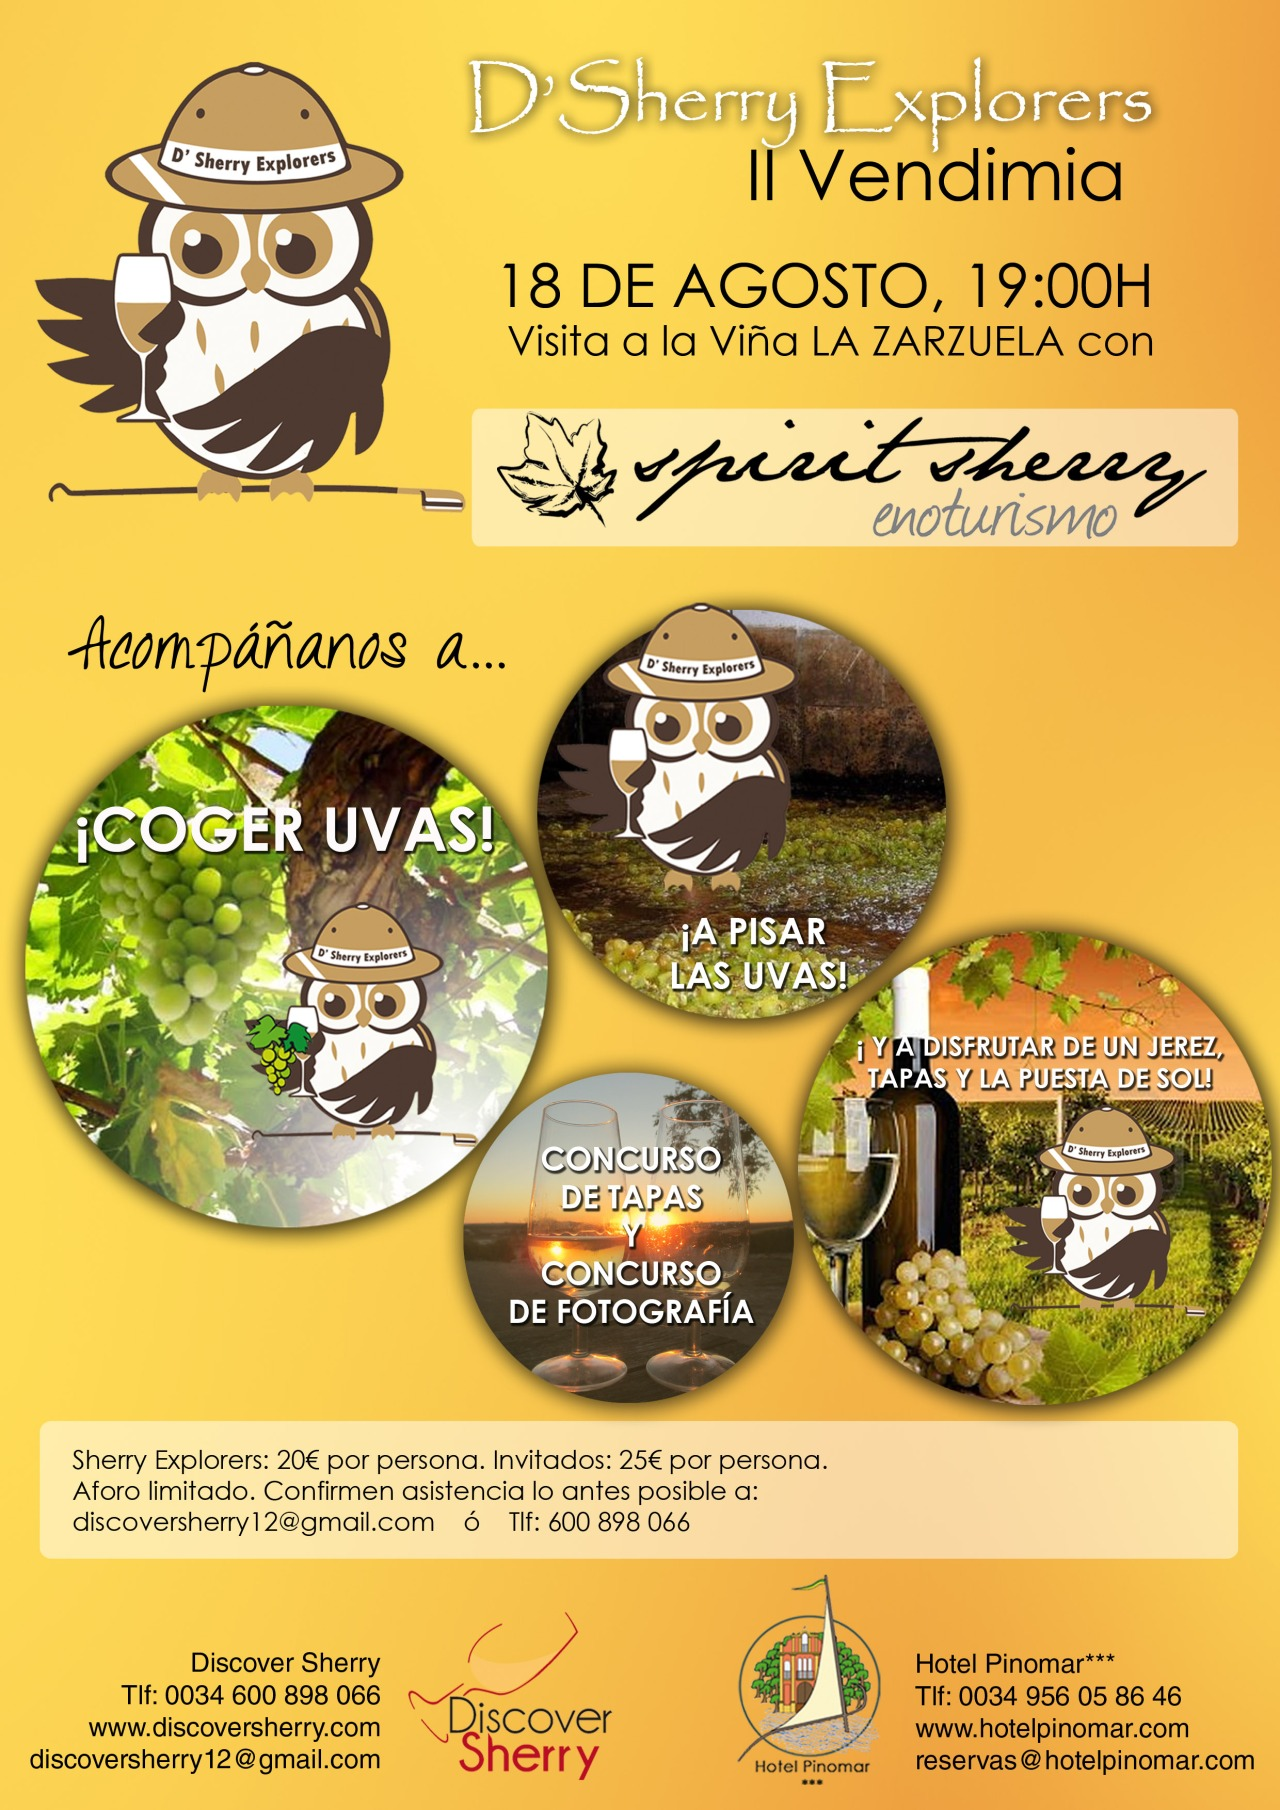 ¡¡D´Sherry Explorers a vendimiar!! D´Sherry Explorers to the harvest!!